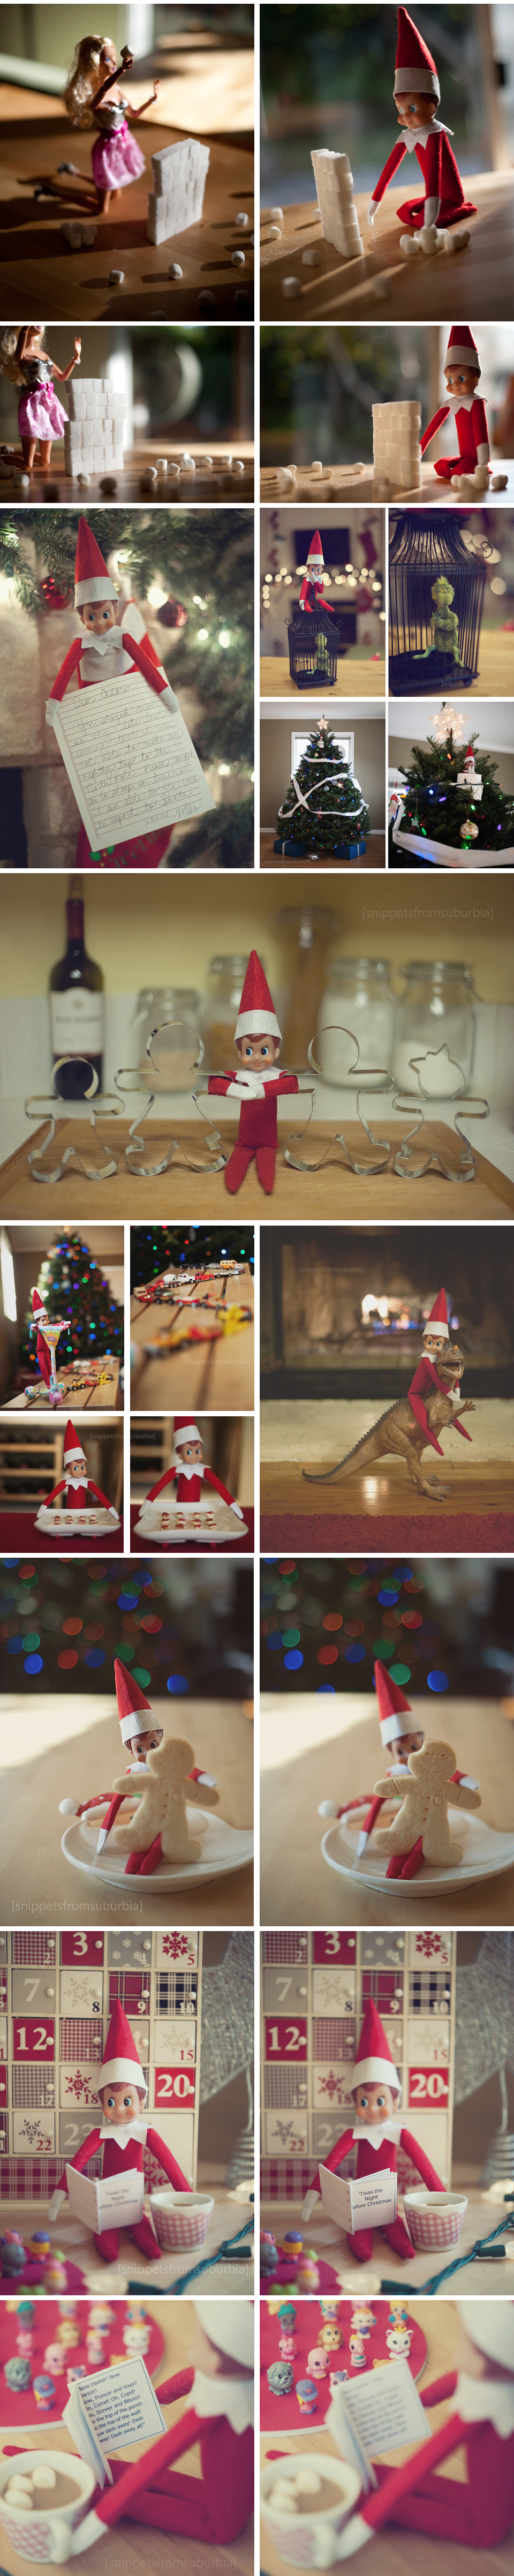 Elf on the Shelf, Collage 2